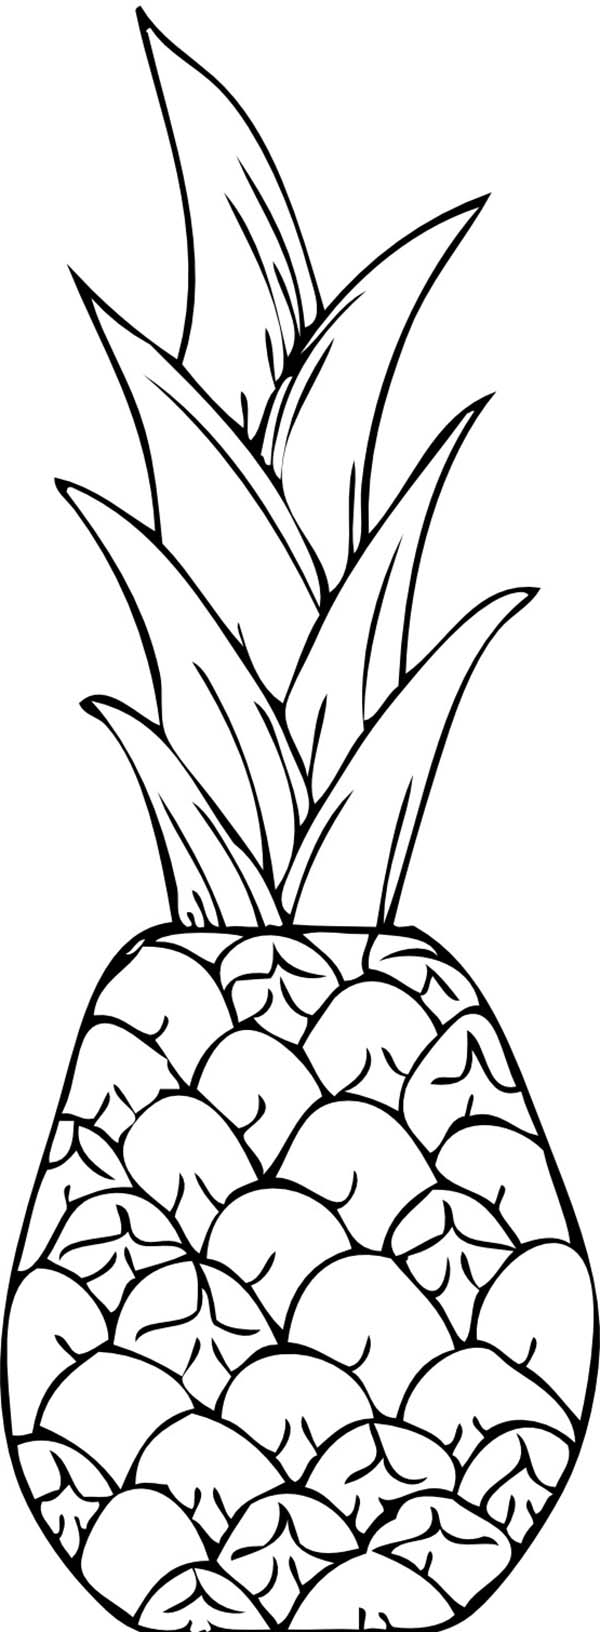 coloring pineapple pineapple coloring pages to download and print for free pineapple coloring